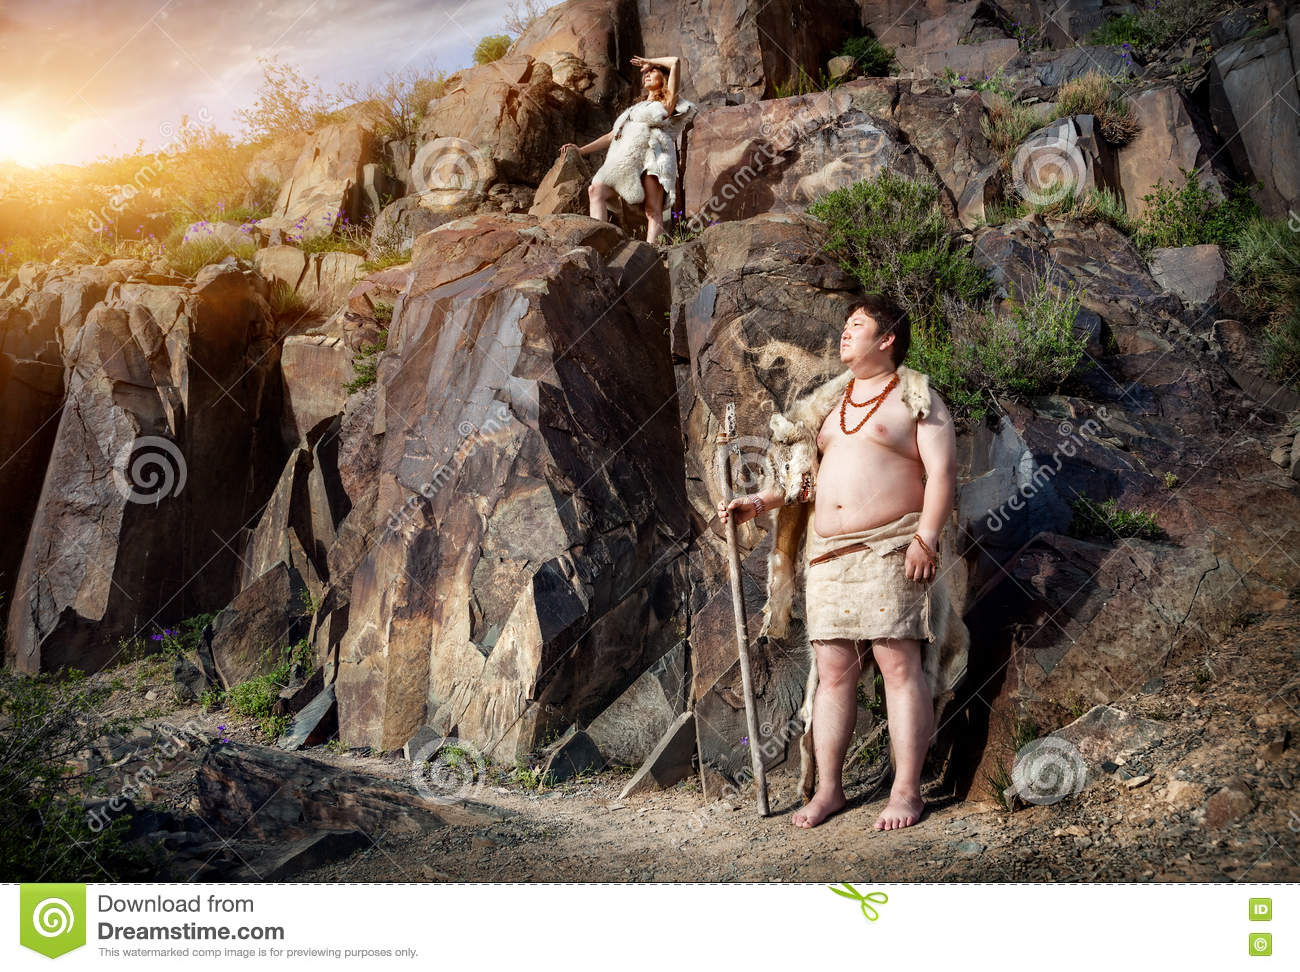 Man Cave For Women : Caveman and woman in animal skin stock image of